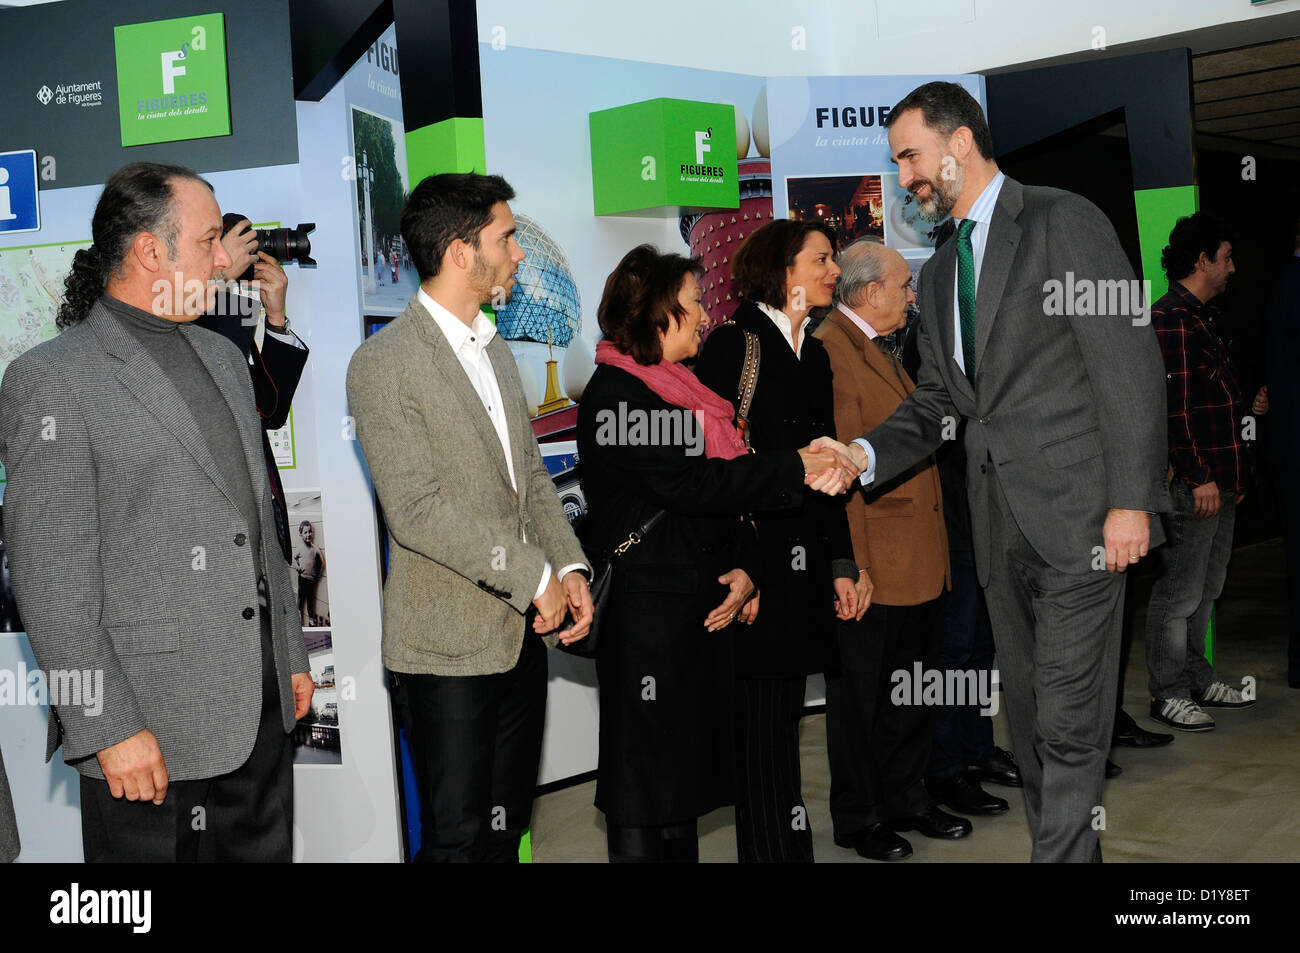 Prince Felipe guest of honor, for the inauguration of Barcelona-Figueres high-speed rail line (AVE) . Spain - Stock Image